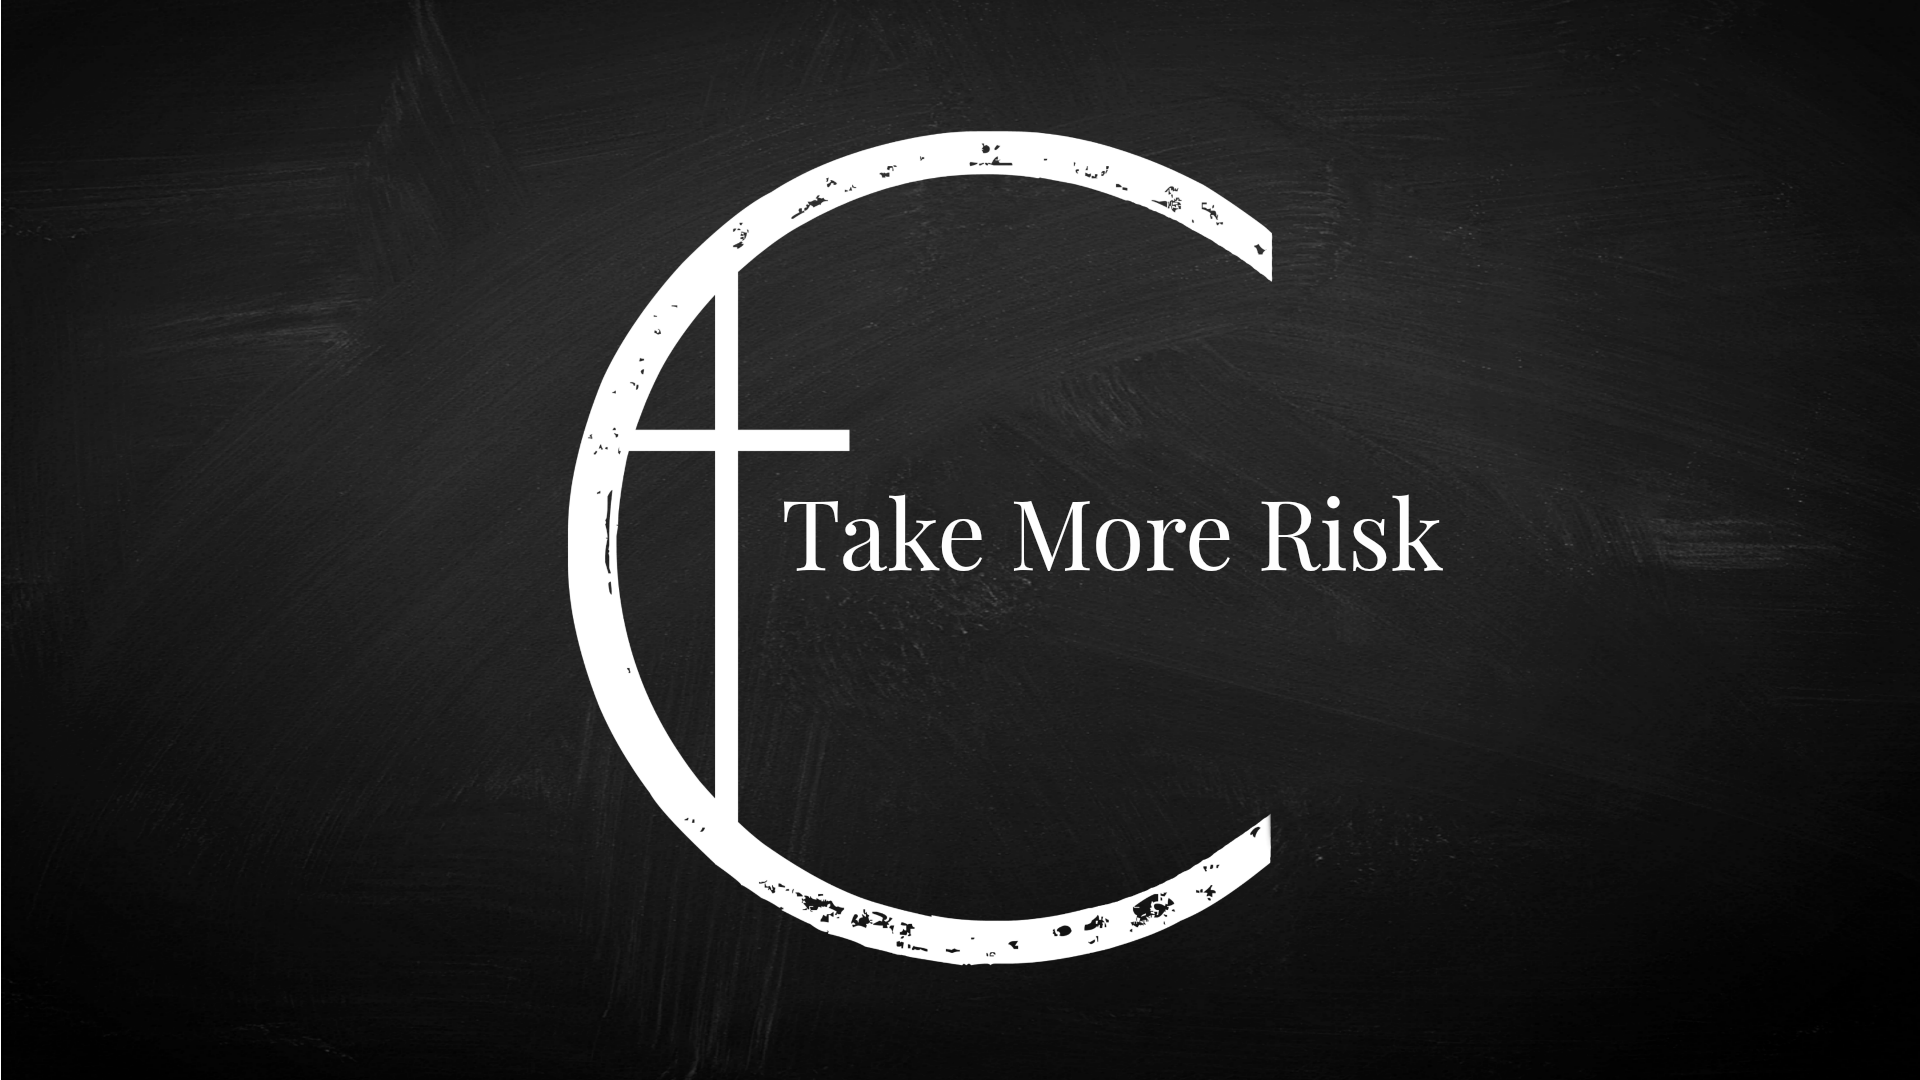 TAKE-MORE-RISK-(1920x1080).png